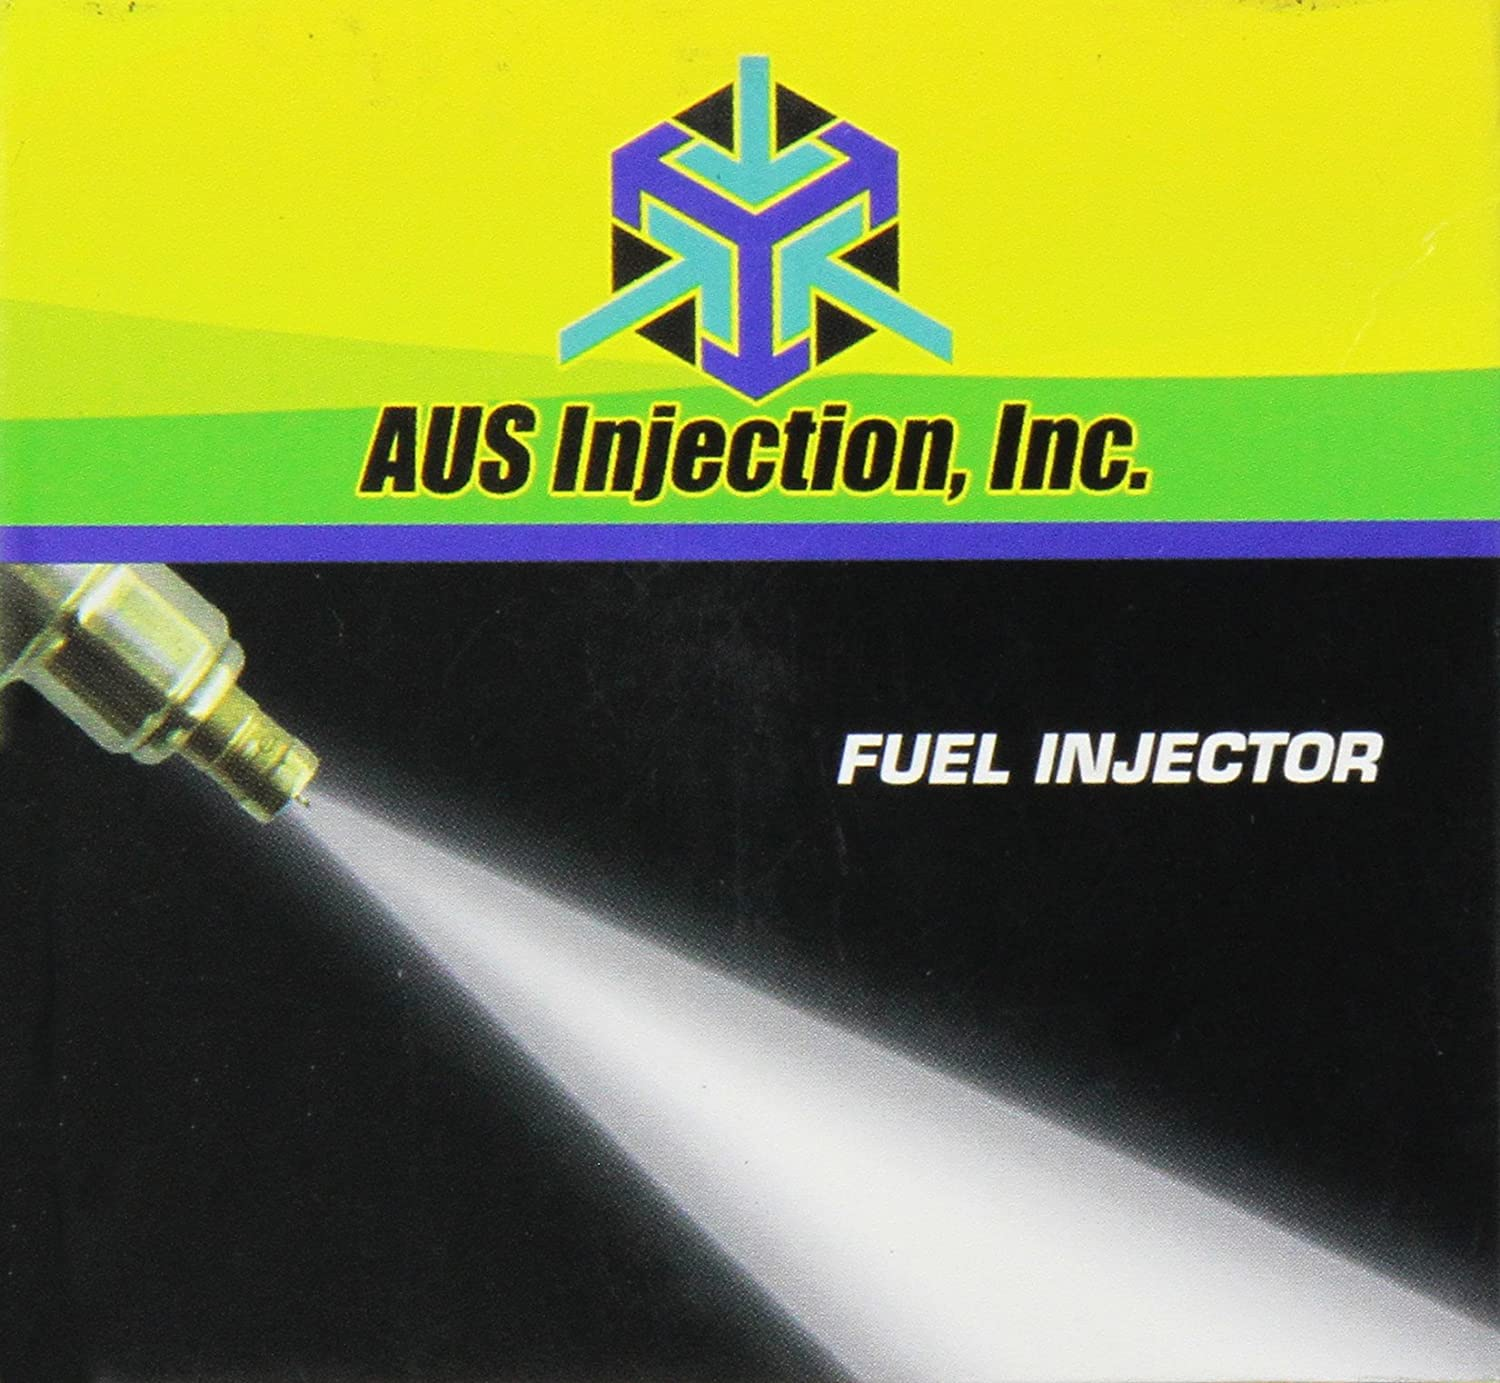 AUS Injection MP-10010 Remanufactured Fuel Injector 2004-2006 Chevrolet//GMC With 8.1L V8 Engine MP10010